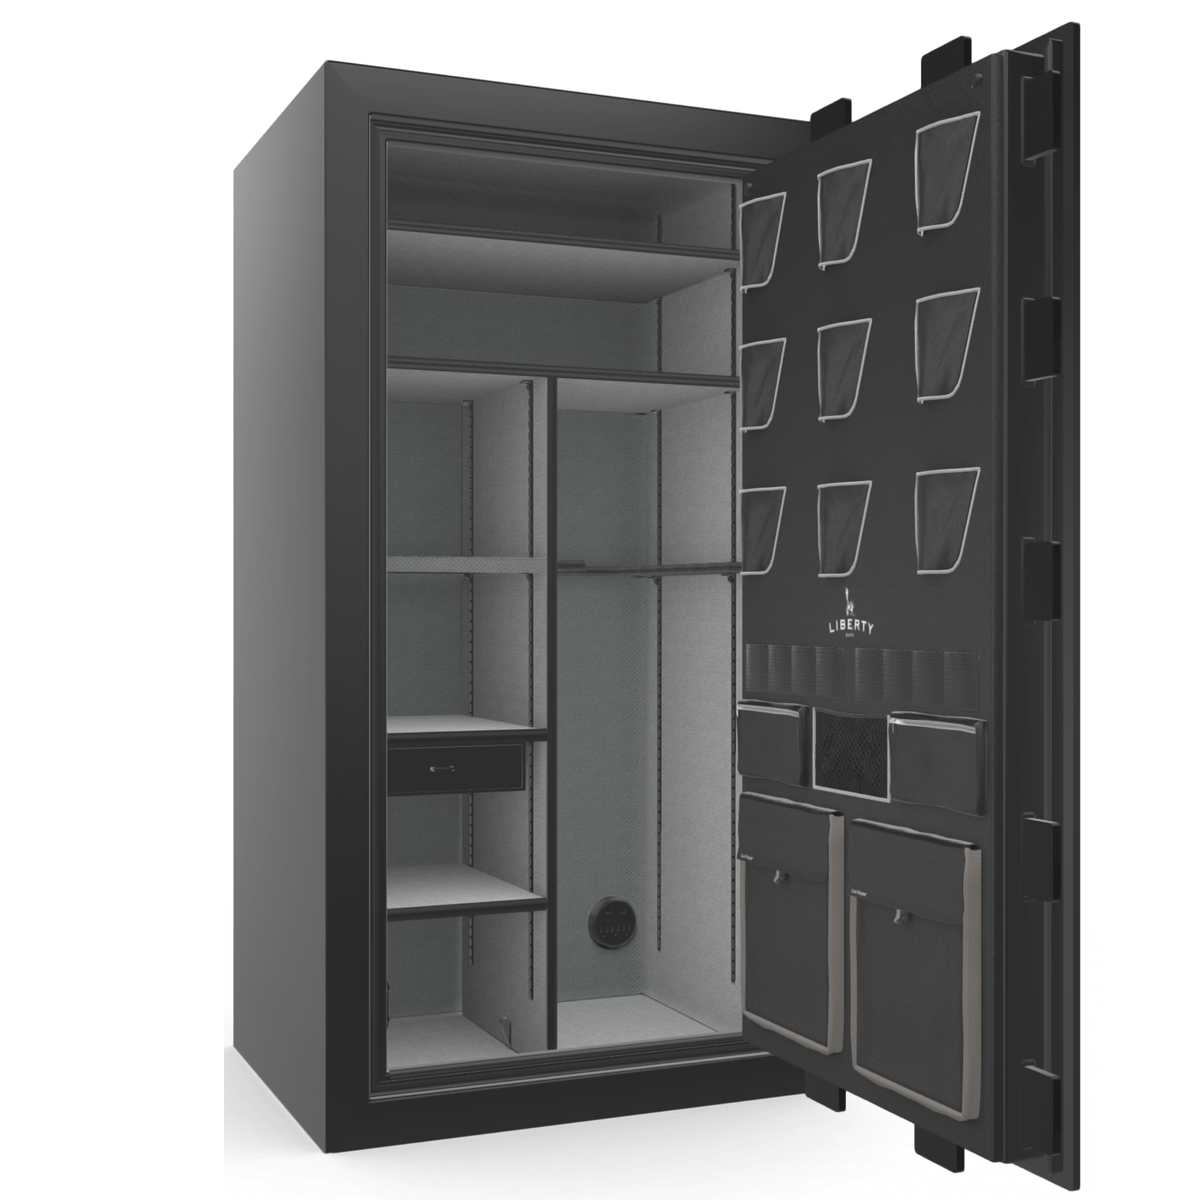 "Classic Plus | 40 | Level 7 Security | 110 Minute Fire Protection | Black Gloss | Black Mechanical Lock | 65.5""(H) x 36""(W) x 32""(D)"